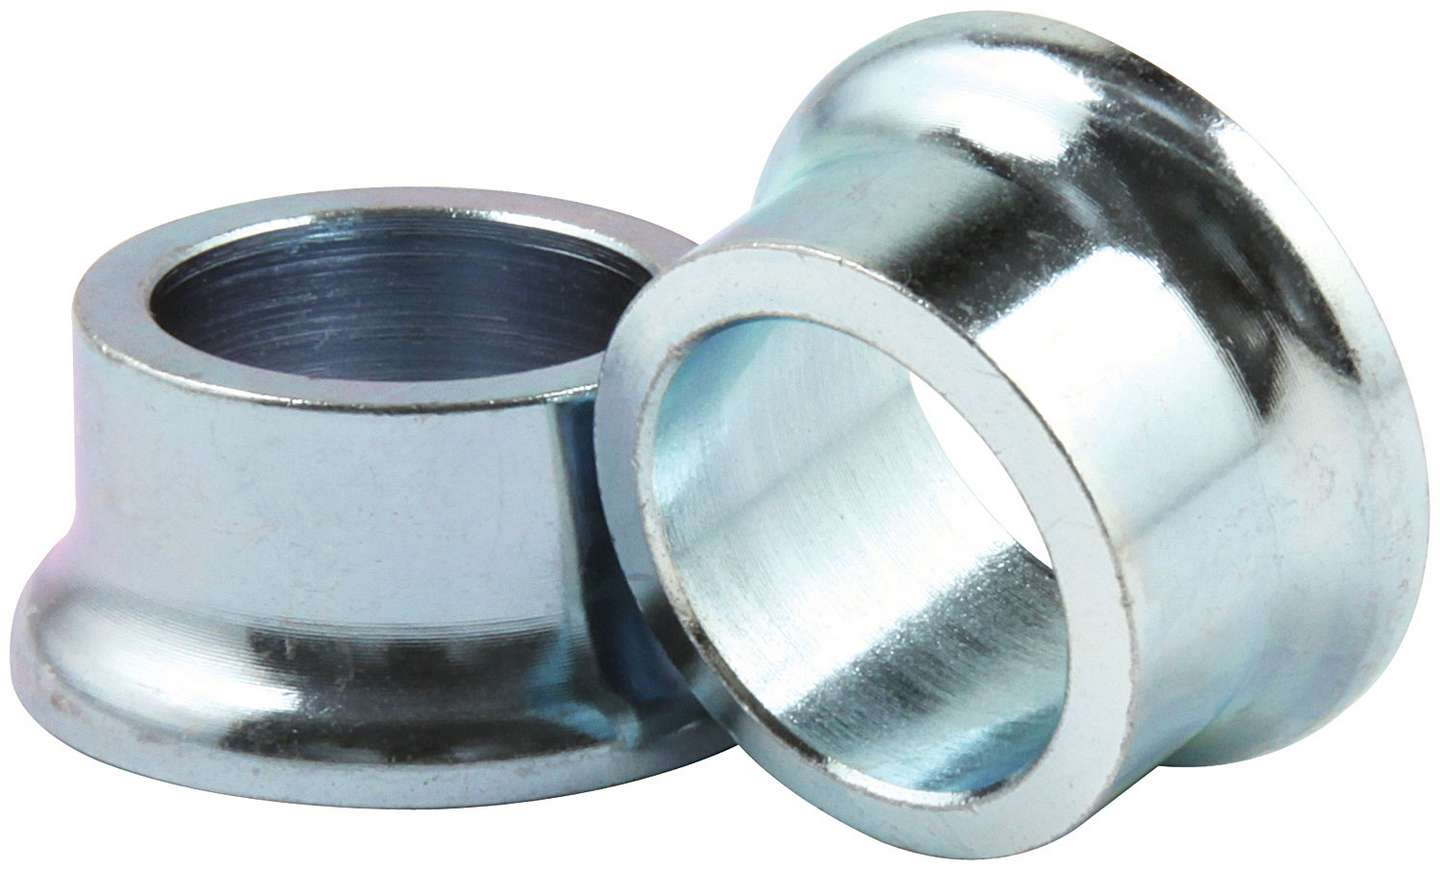 Allstar Tapered Spacers, Steel 5/8 I.D., 1/2 Long